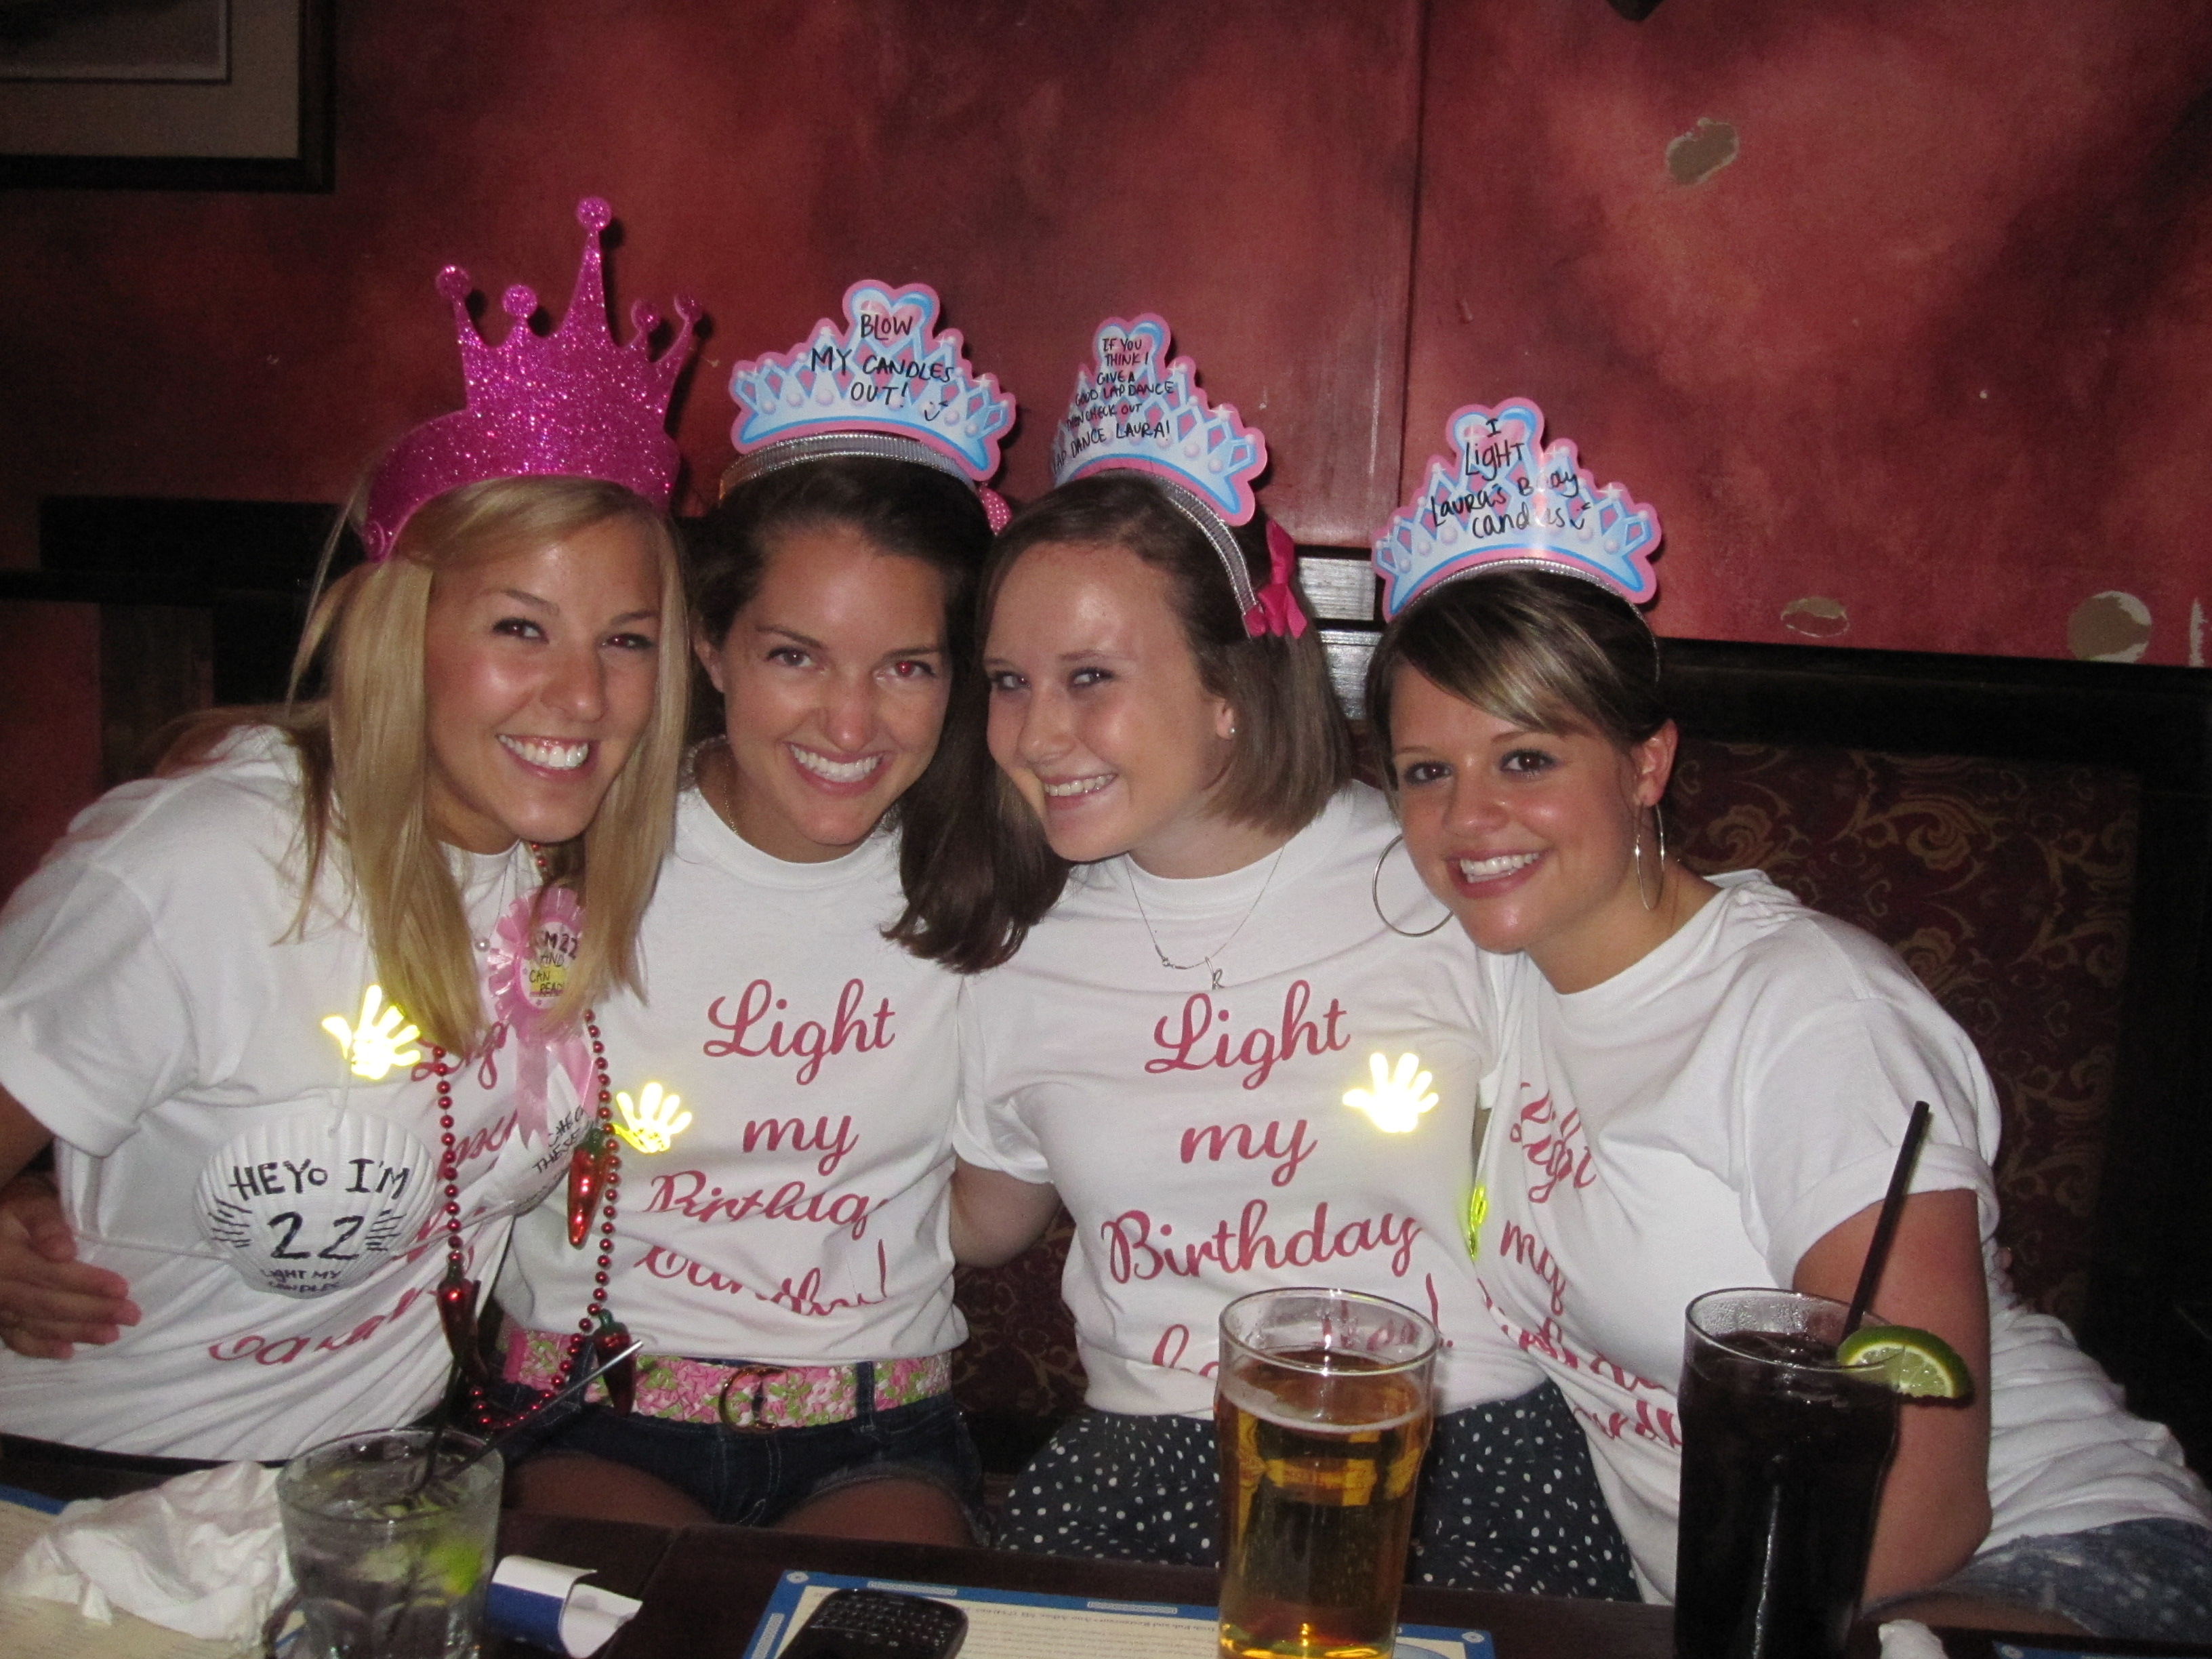 Design your own t-shirt birthday party - Light My Birthday Candles T Shirt Photo